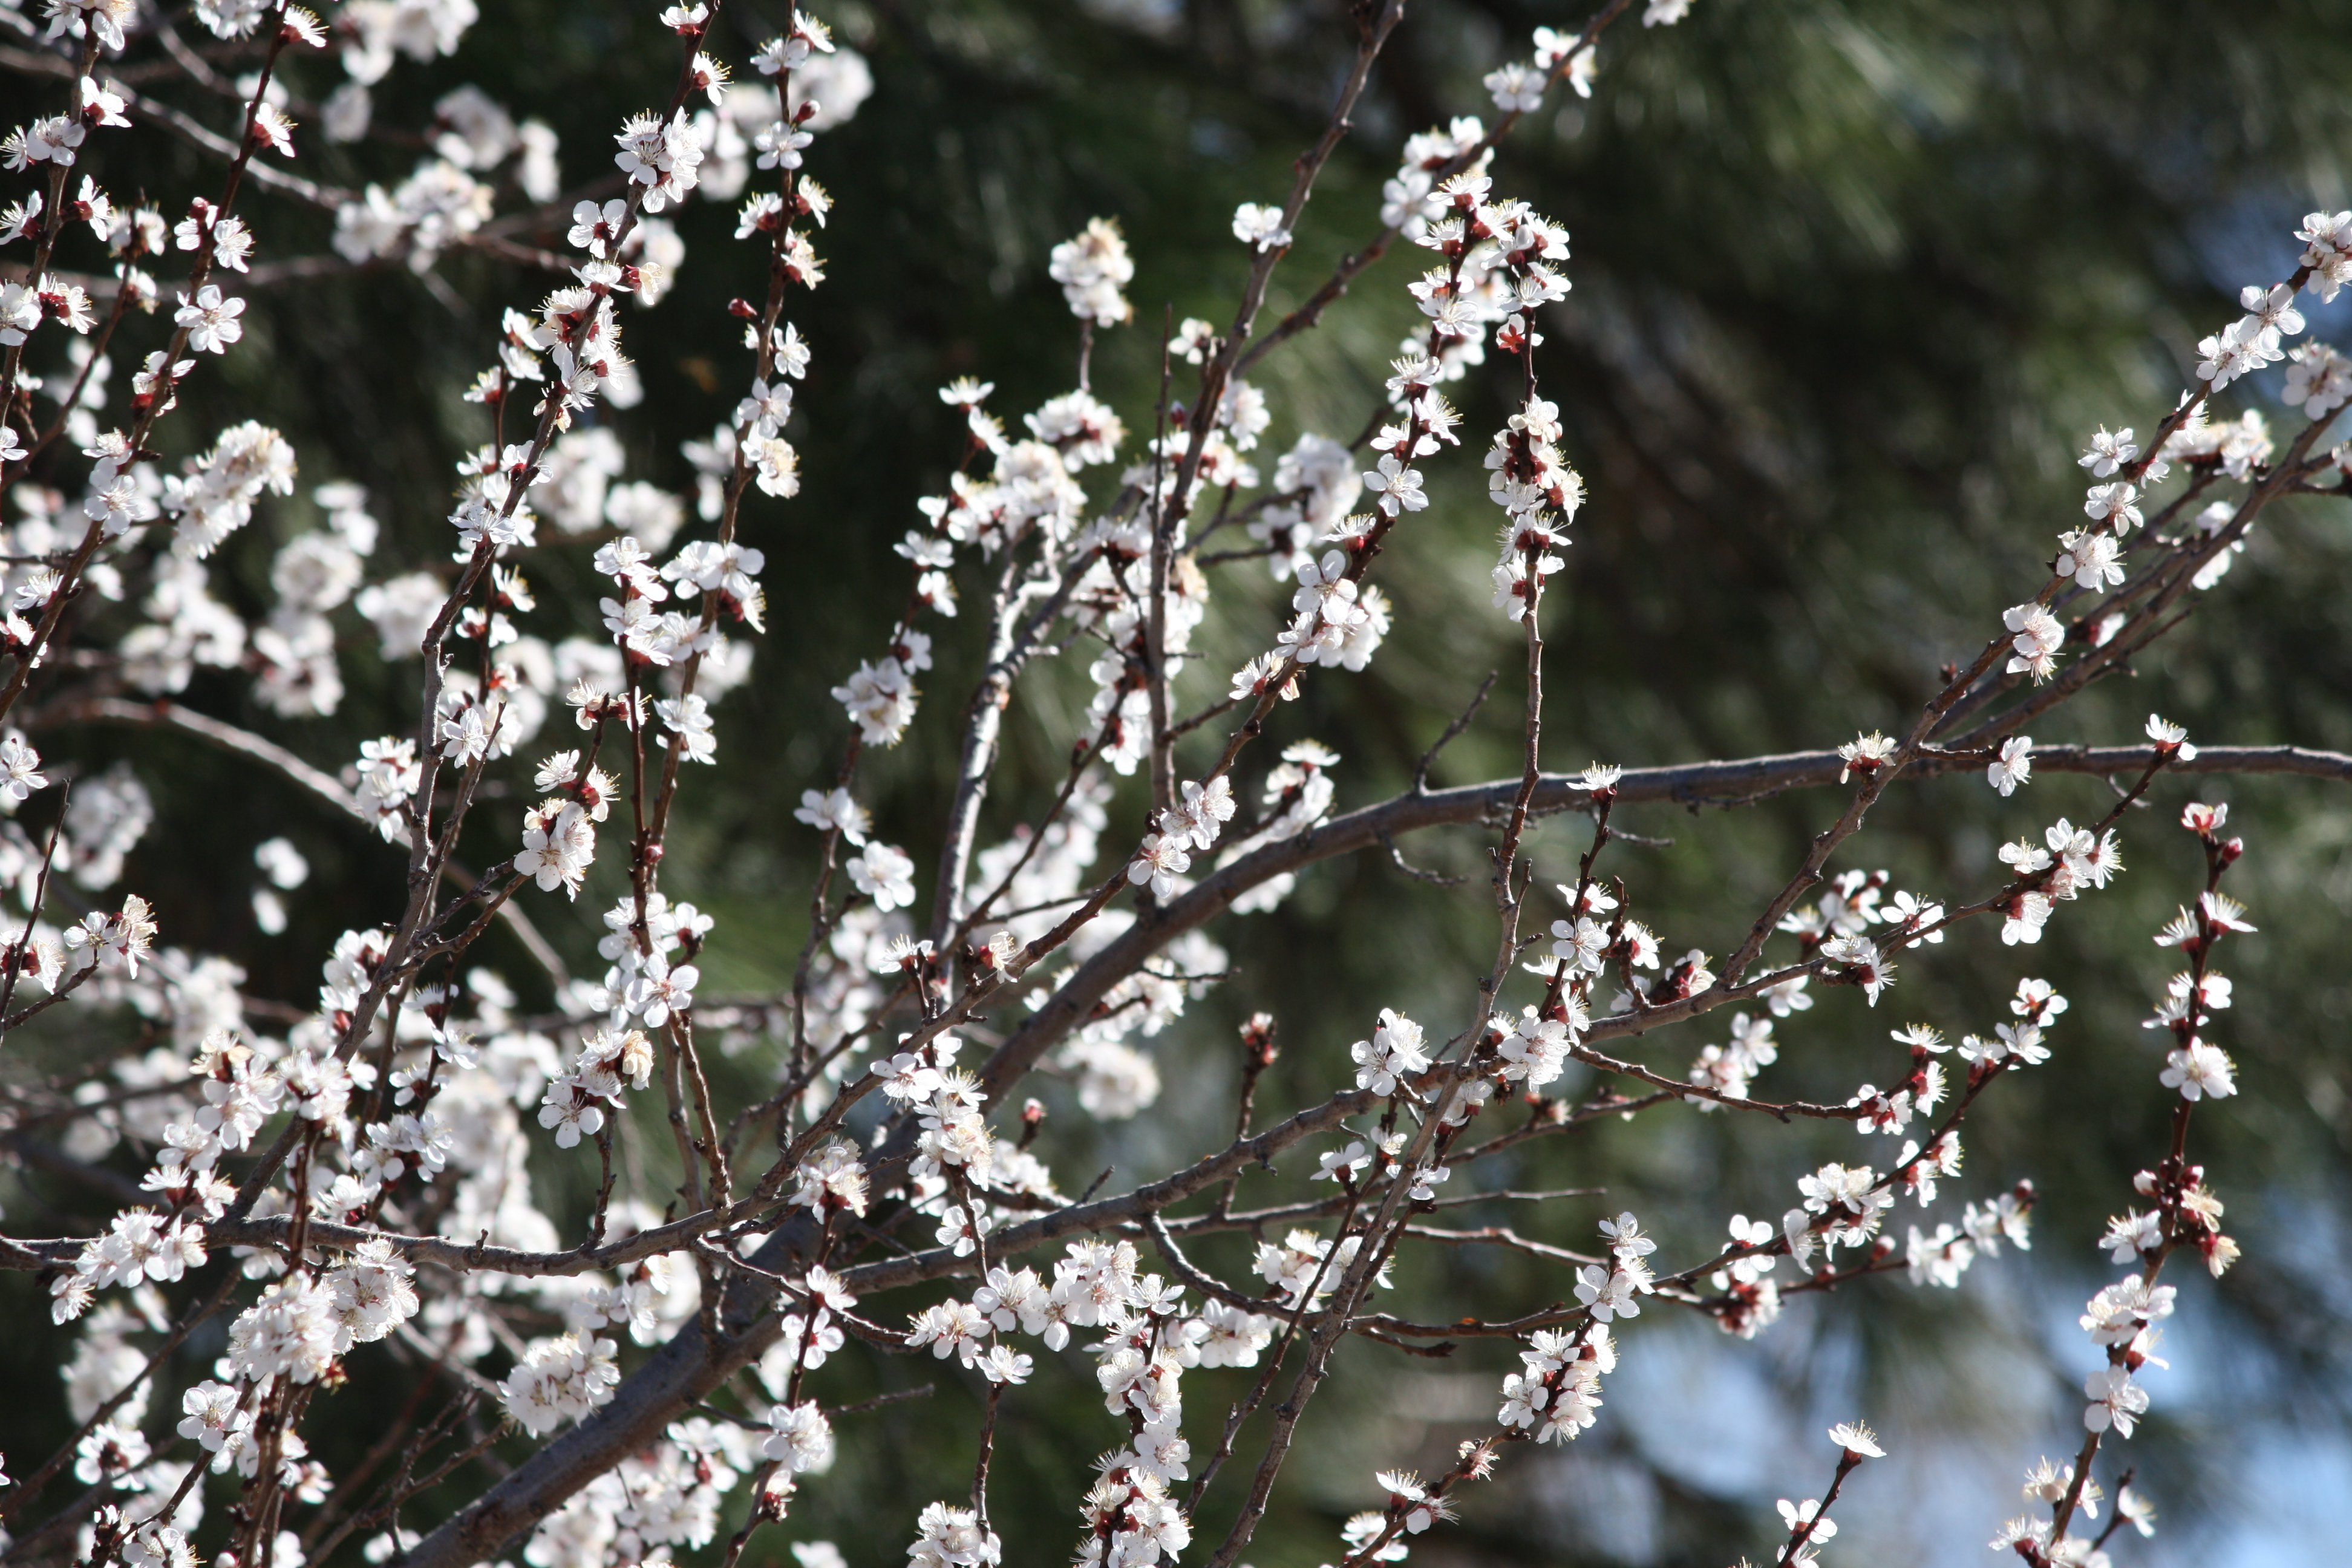 White blossoms on flowering apricot tree picture free photograph white blossoms on flowering apricot tree mightylinksfo